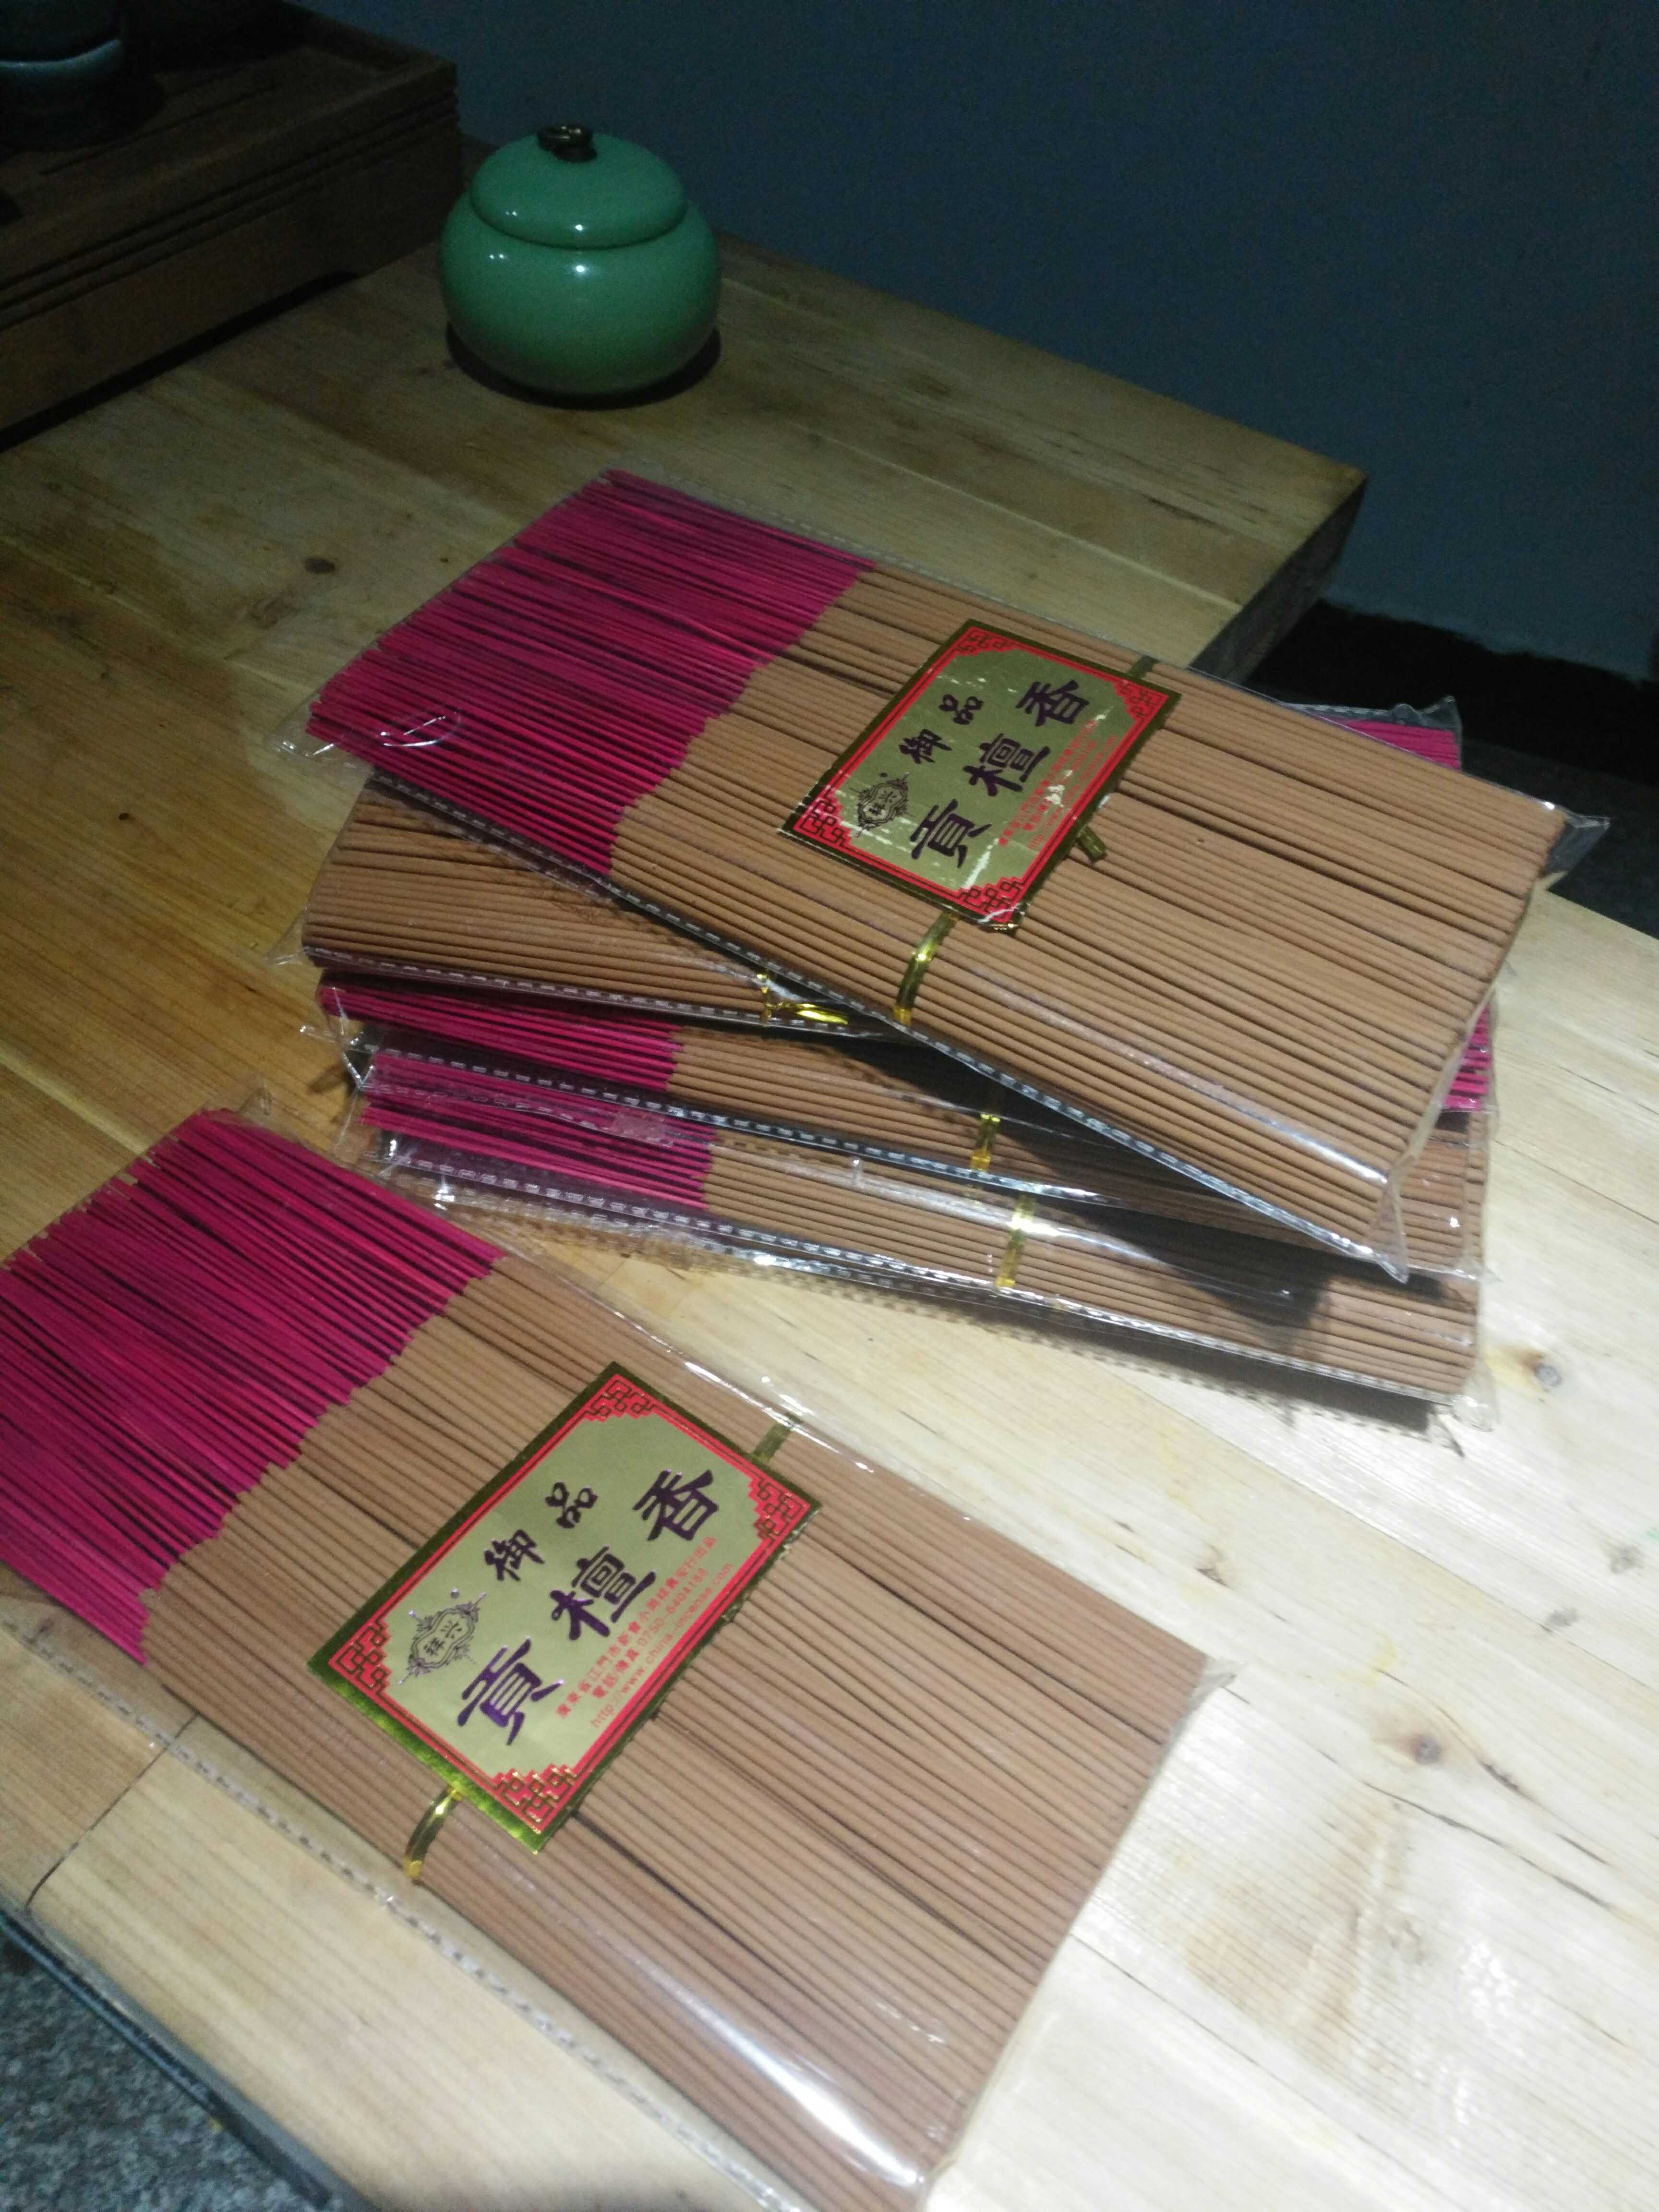 Usd 9 83 Bamboo Sign Incense Line Incense Home For Buddha Long Incense Worship Ancestors Burning Incense Worship Buddha Sandalwood For Incense Safe 300 Grams Of Clothing Wholesale From China Online Shopping